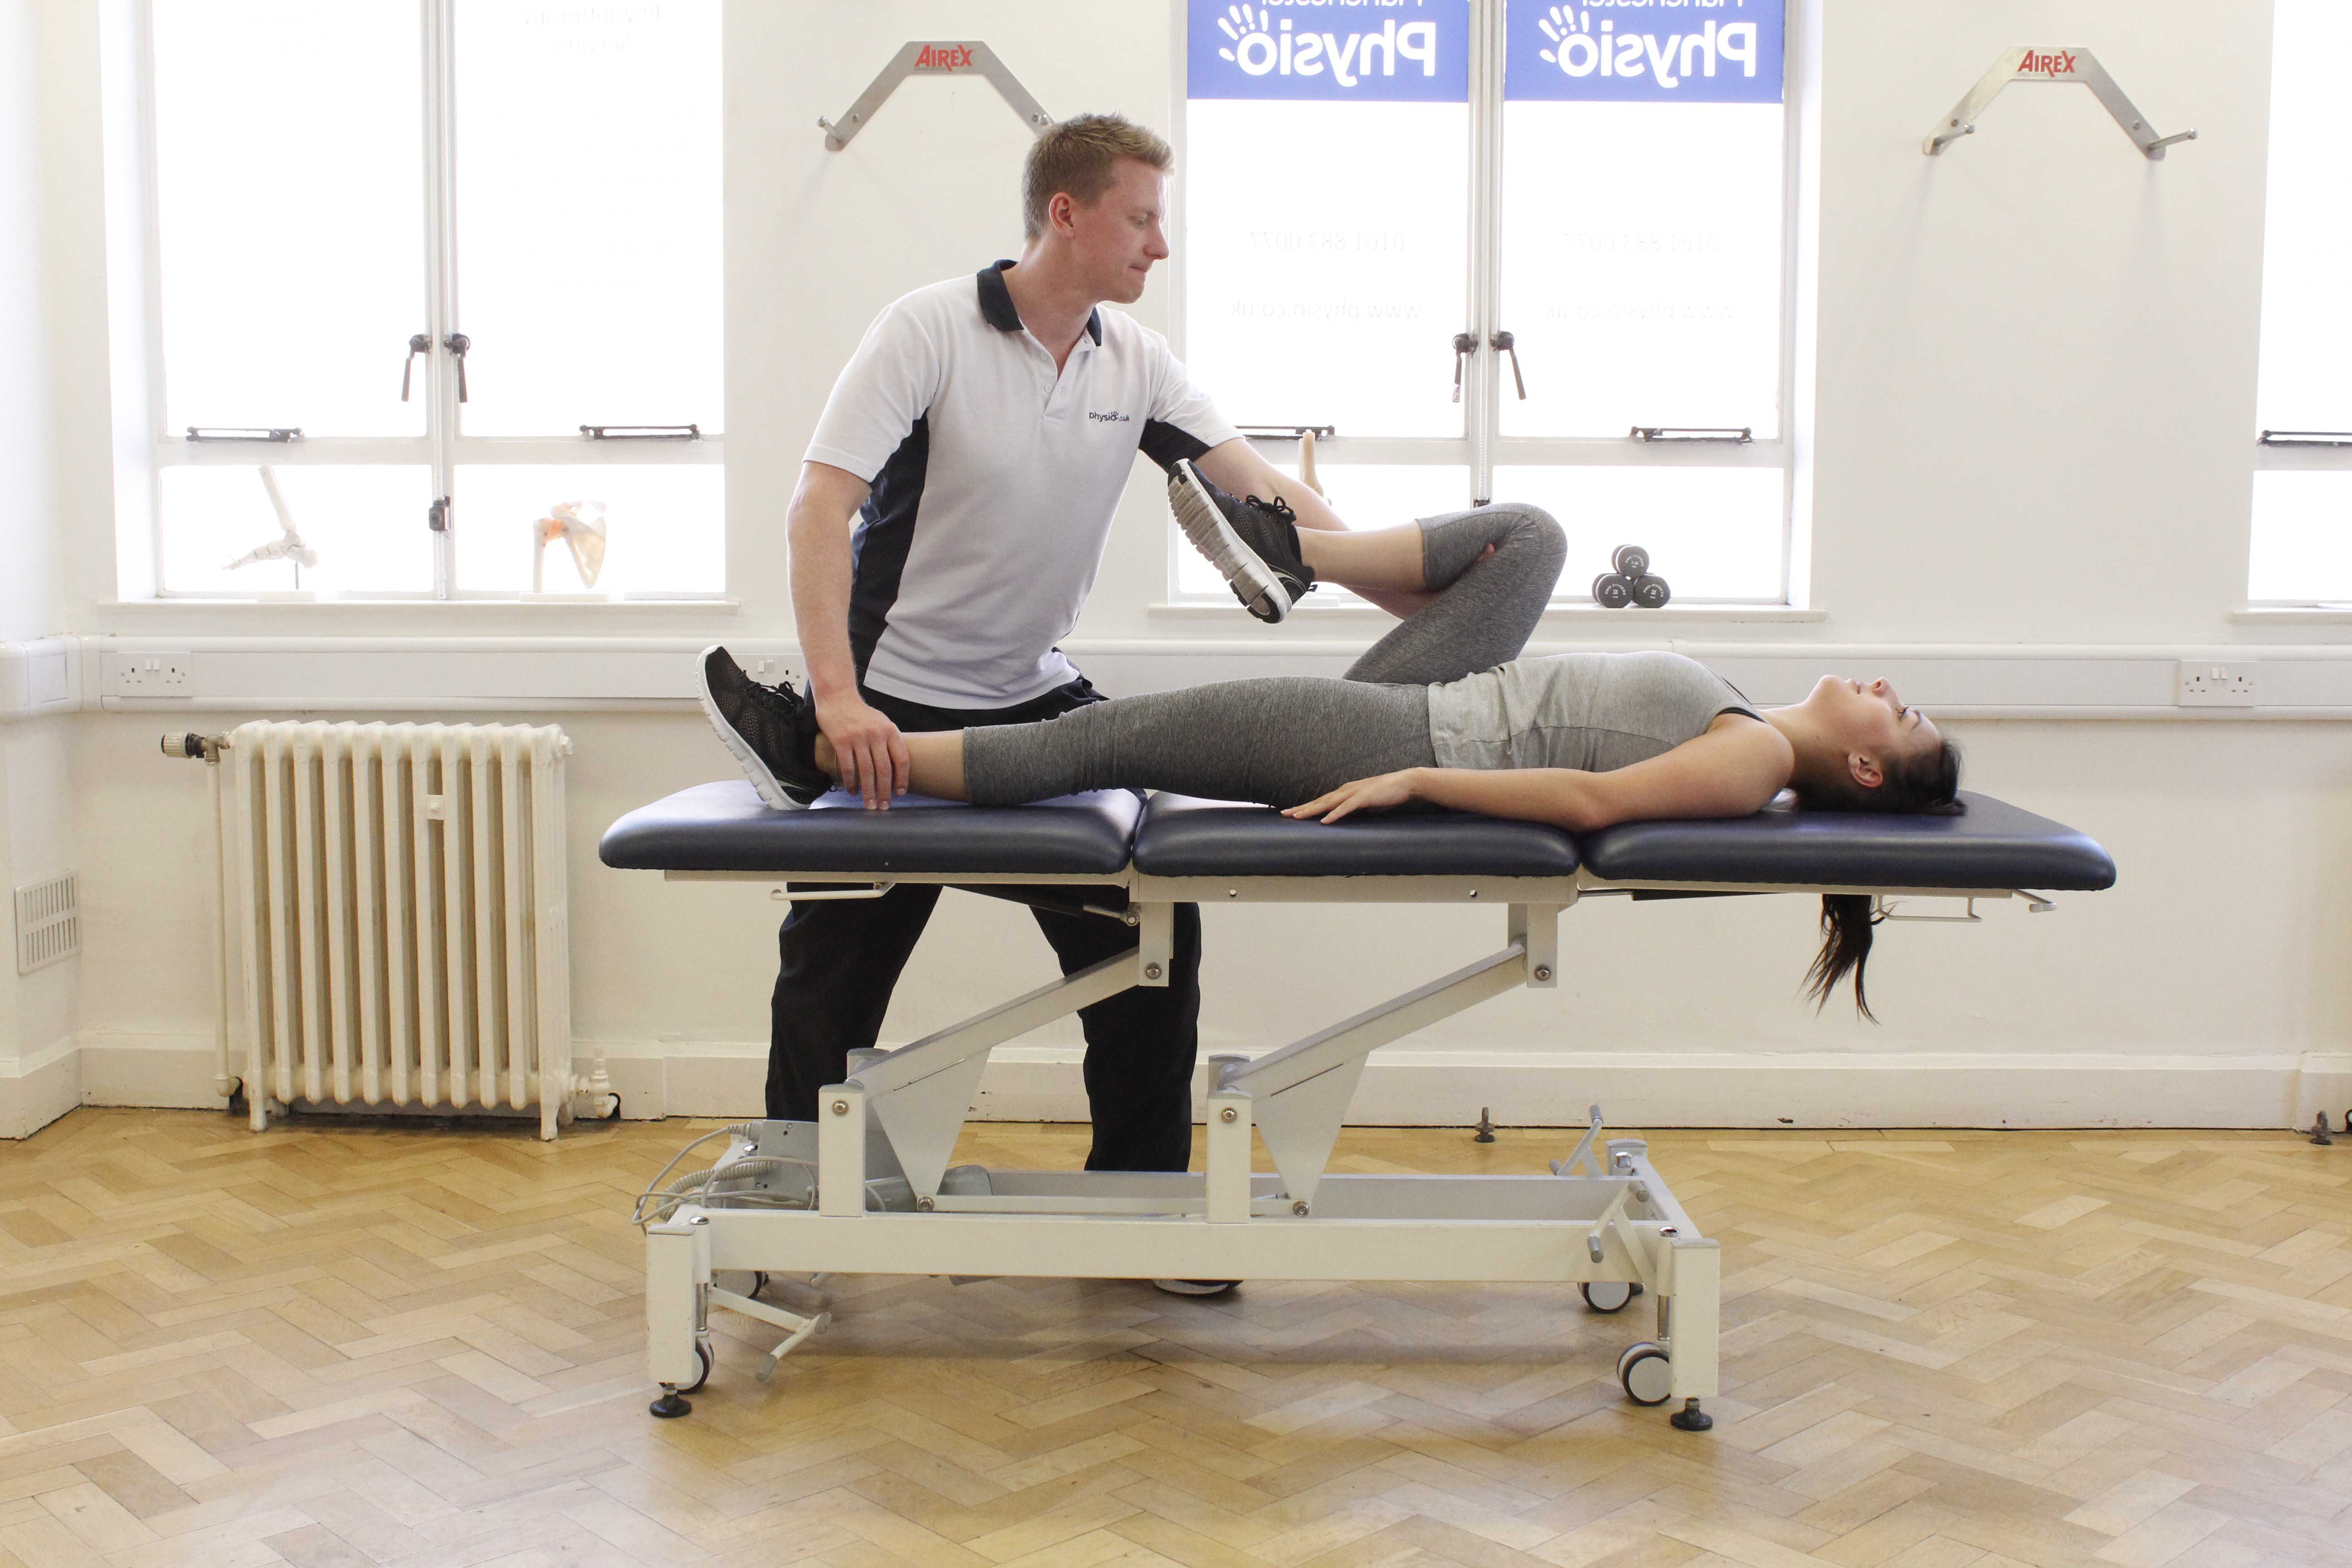 Stretches to the hip and knee conducted by a musculoskeletal physiotherapist